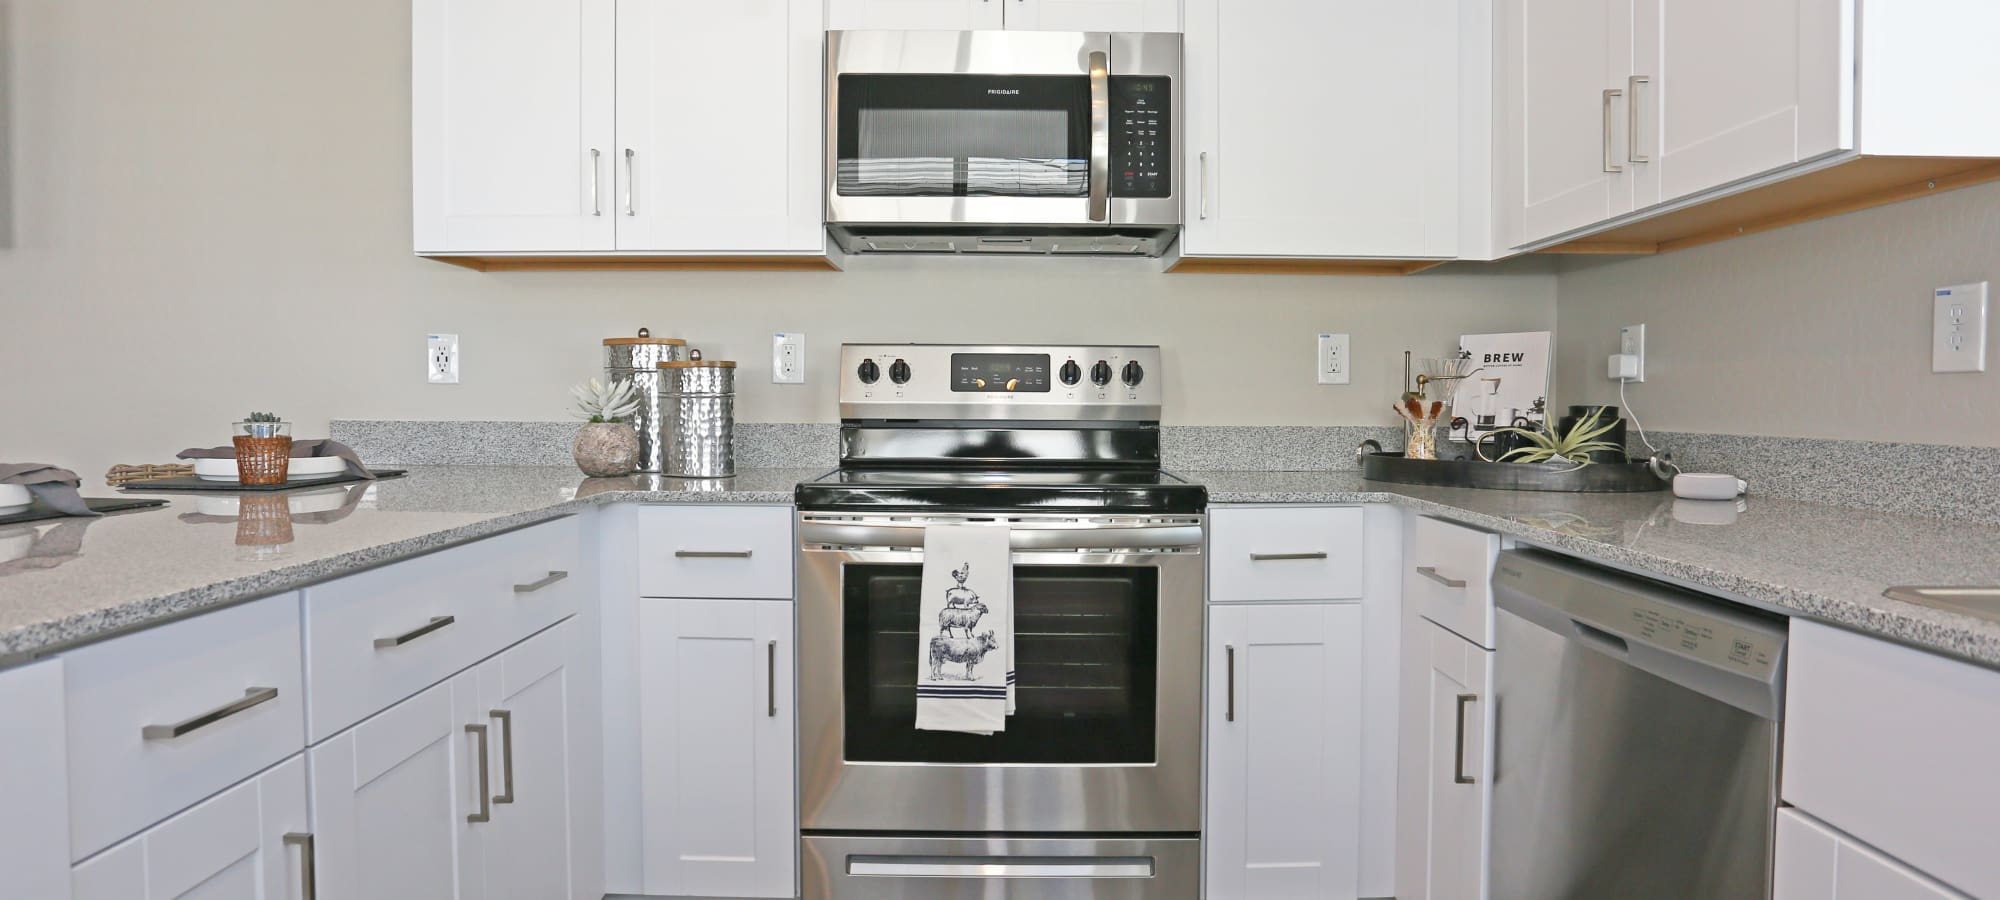 Stainless-steel appliances in model home's kitchen at Christopher Todd Communities At Stadium in Glendale, Arizona